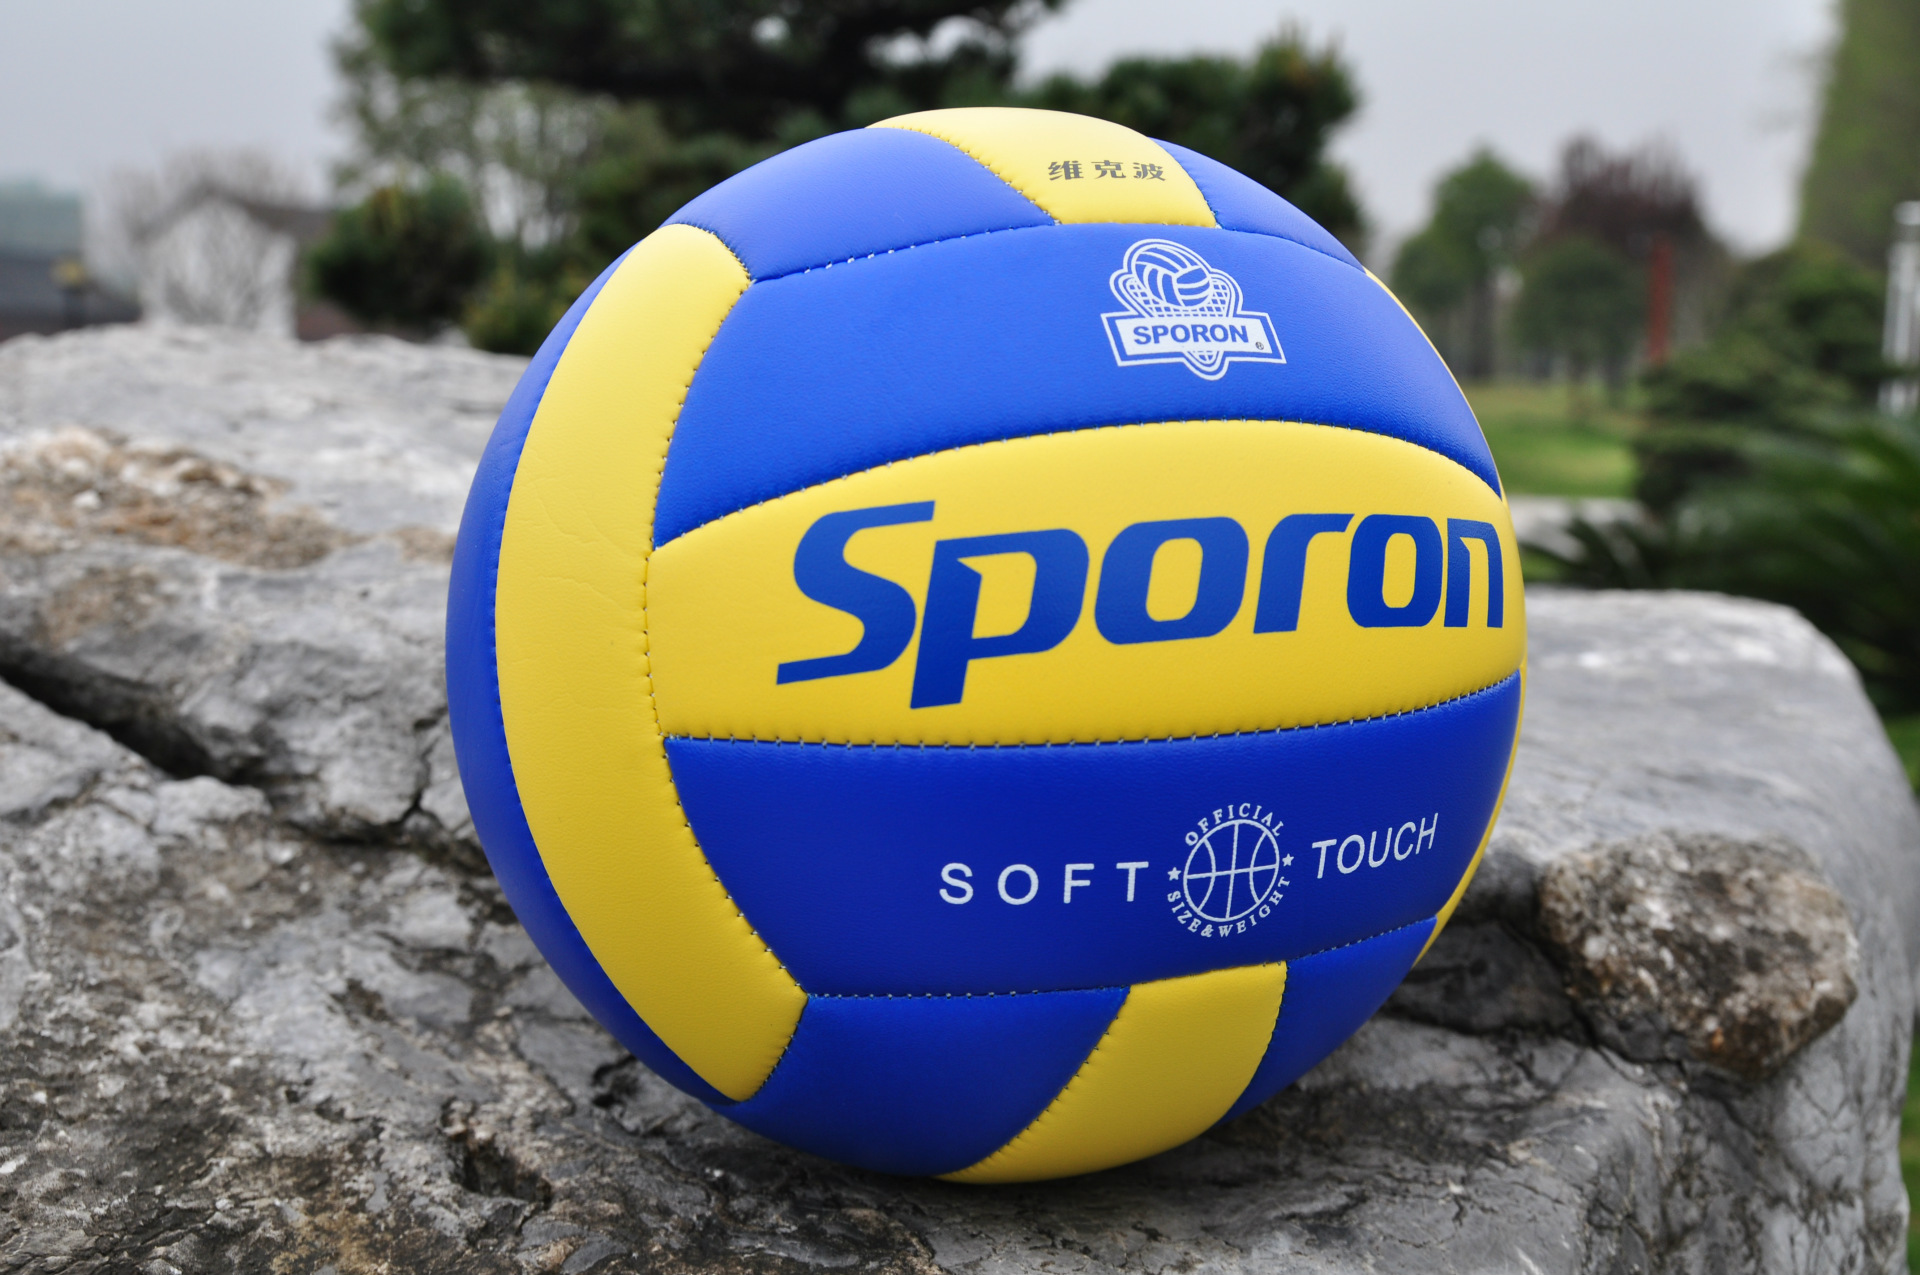 Volleyball No. 5 Inflatable Soft Volleyball The Academic Test For The Junior High School Students College Student Game Only Voll